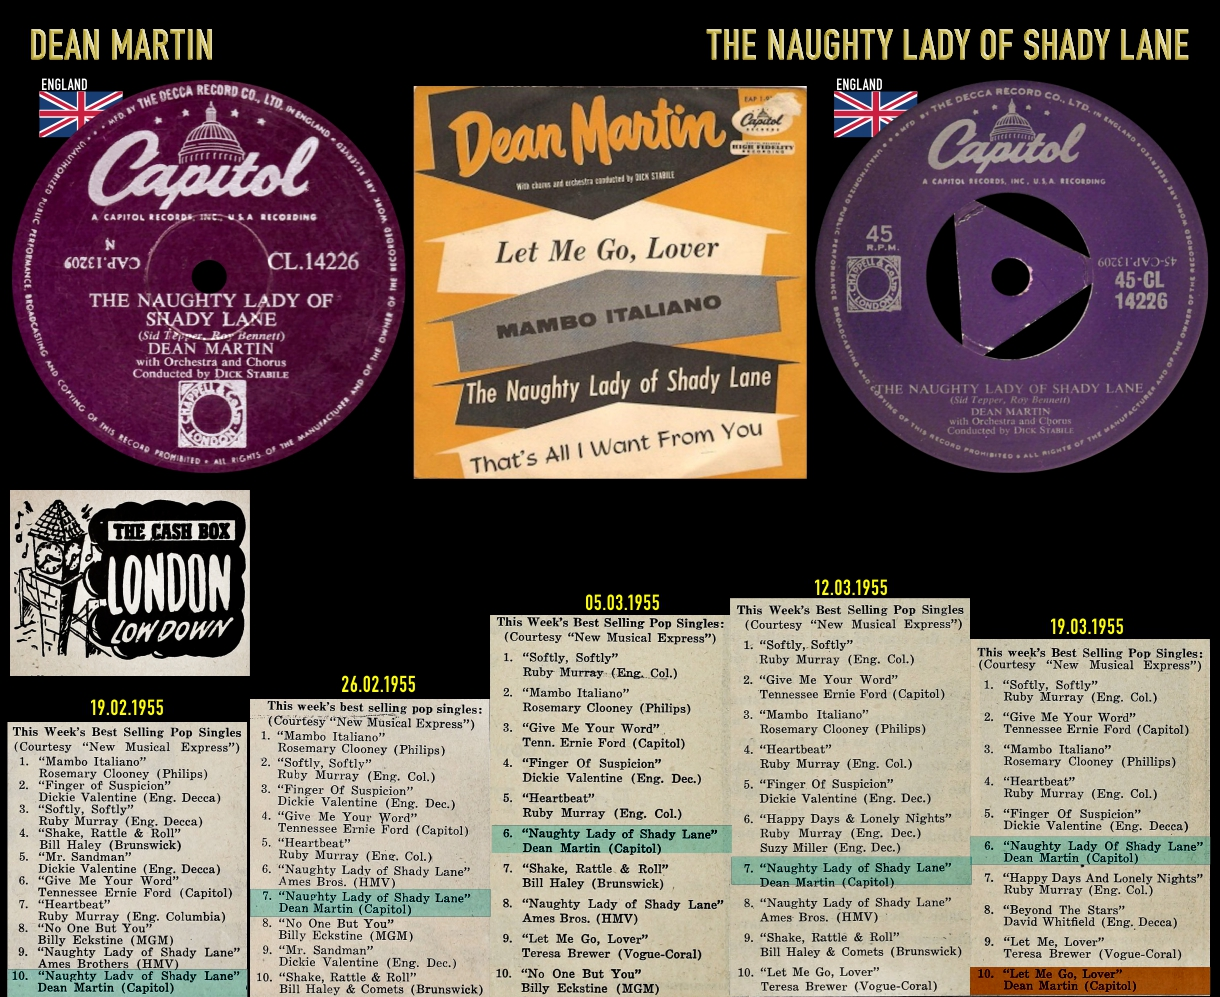 550129_Dean Martin_The Naughty Lady Of Shady Lane